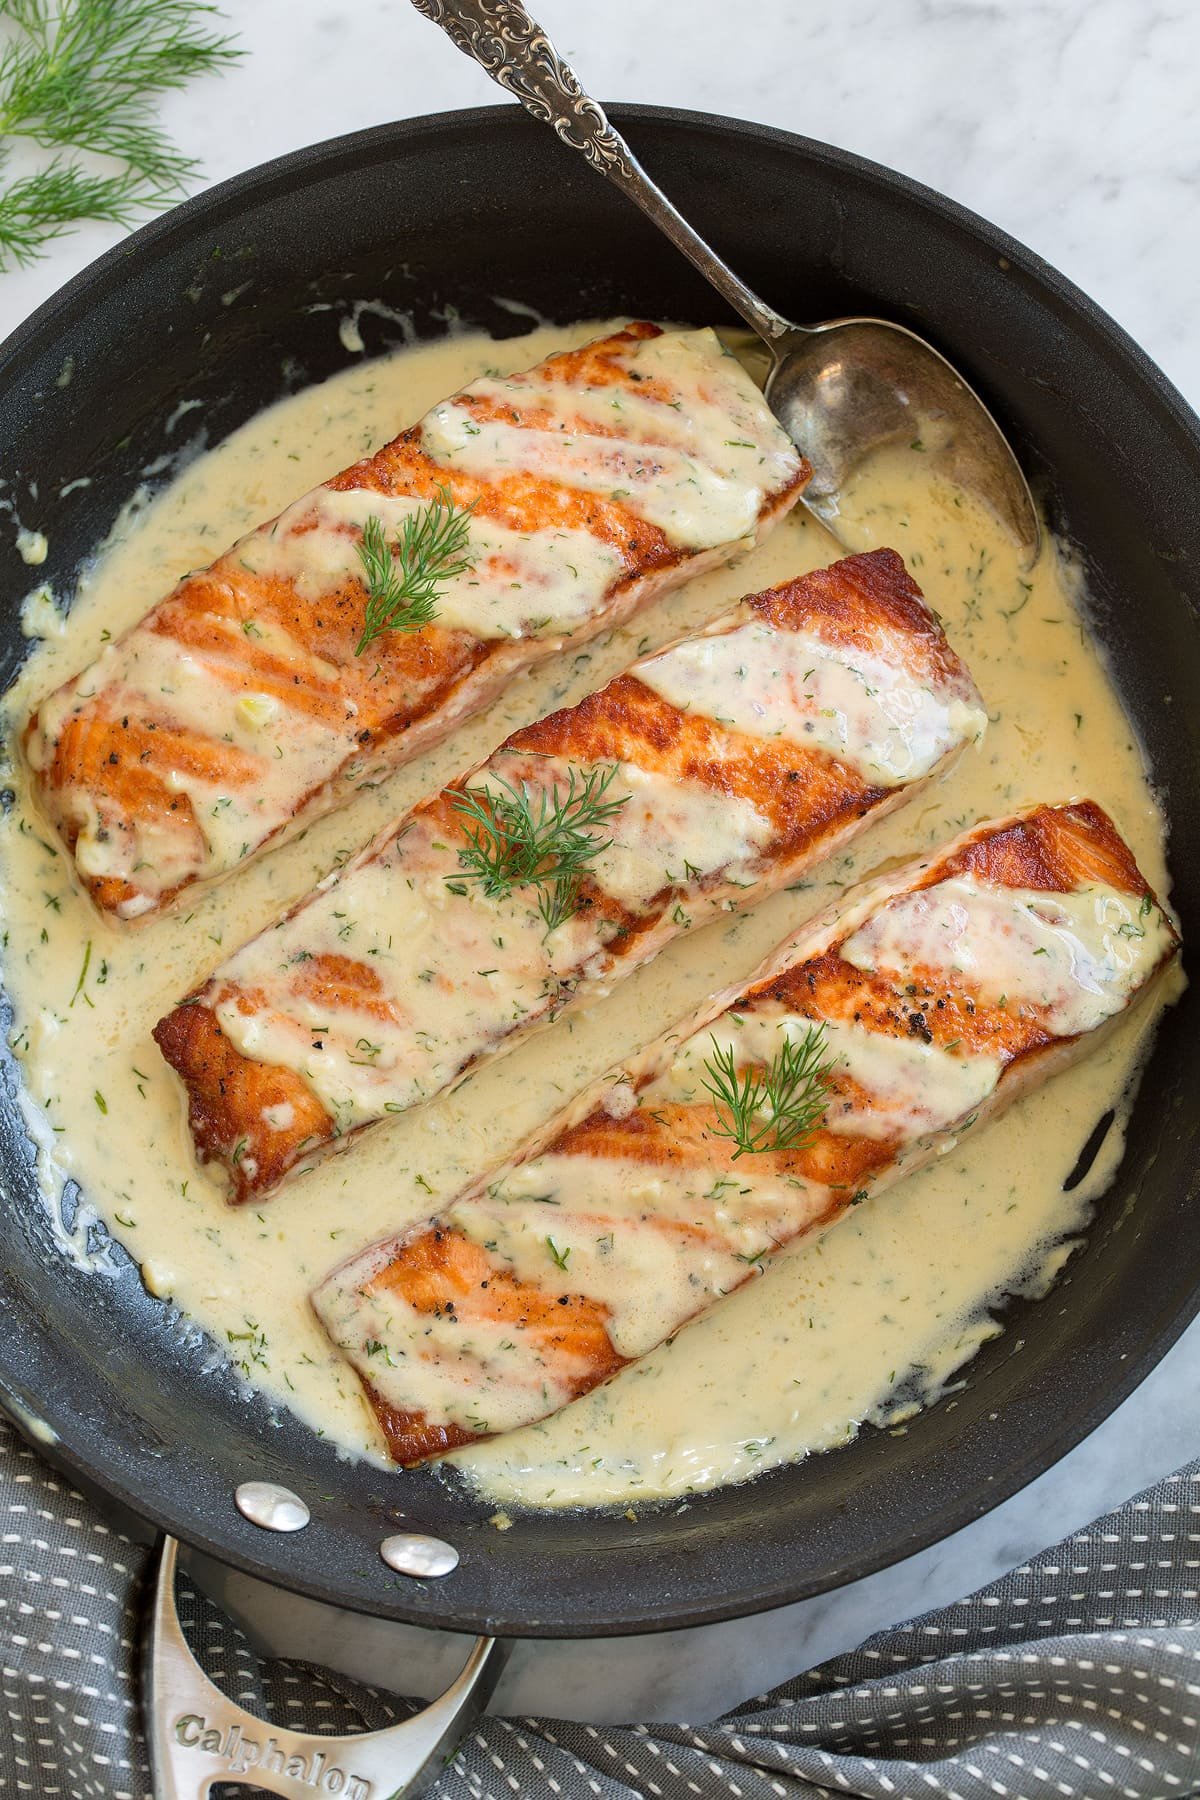 Three salmon fillets in a skillet with a creamy dijon sauce.